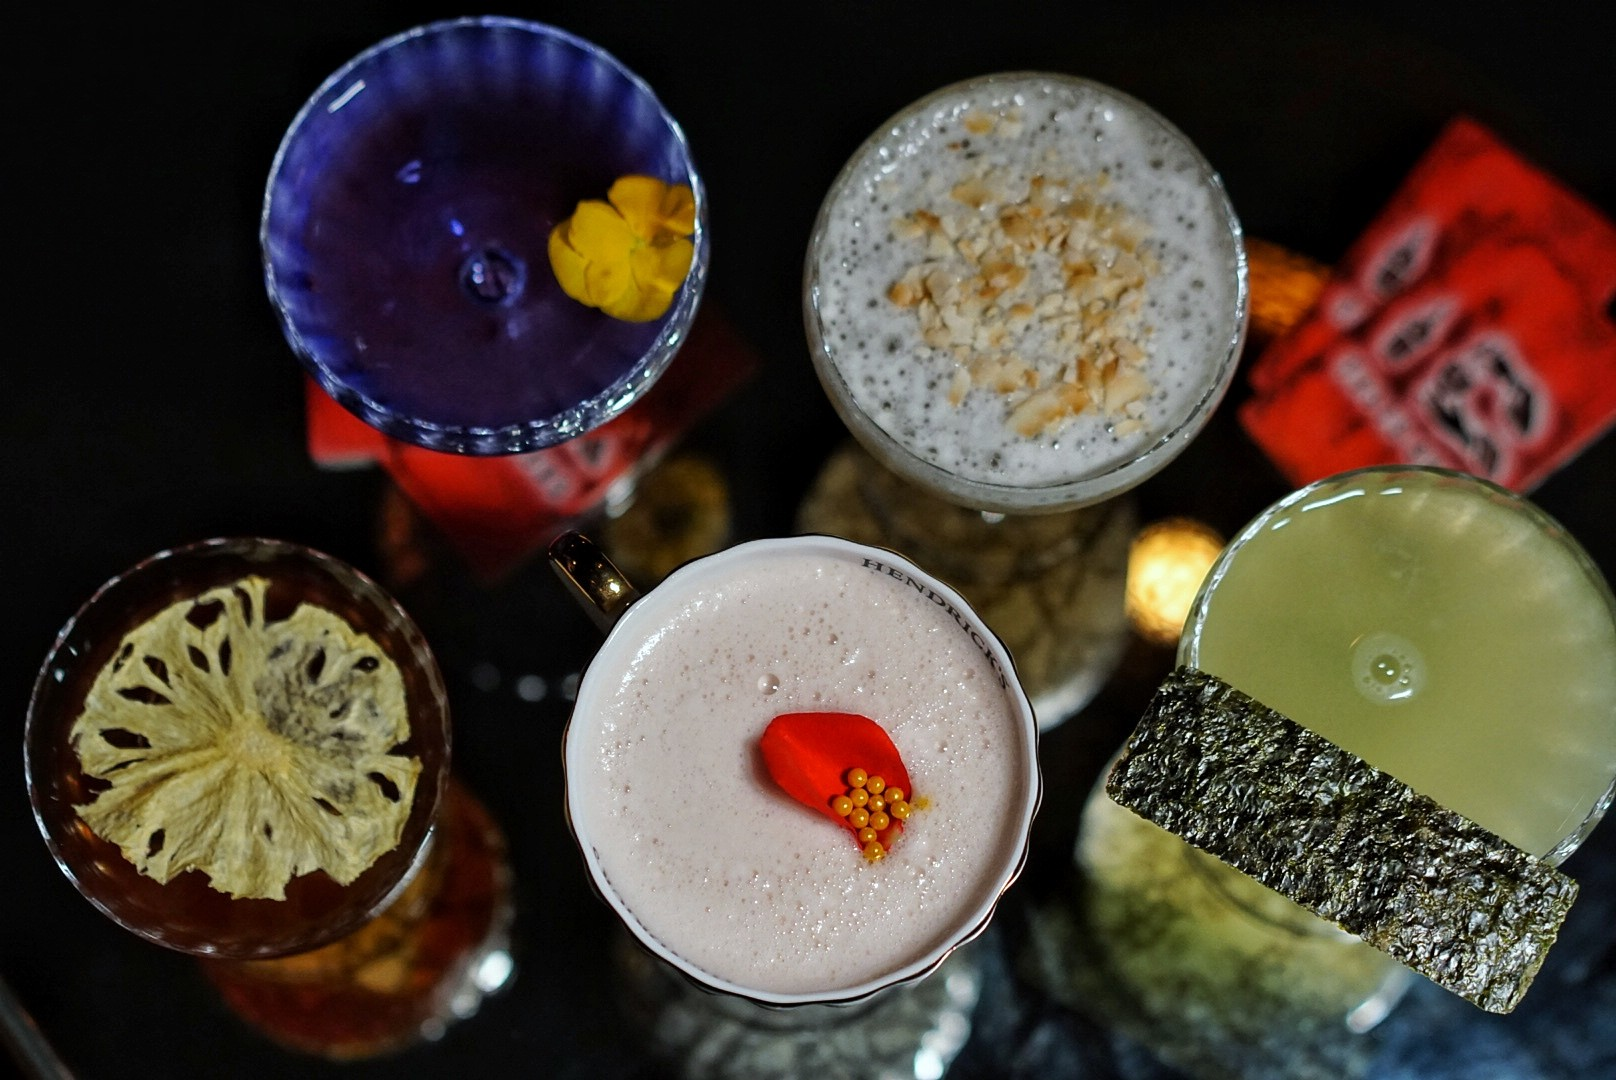 A Fortnight of Amazing Cocktails Awaits with DRiNK Fest 2020